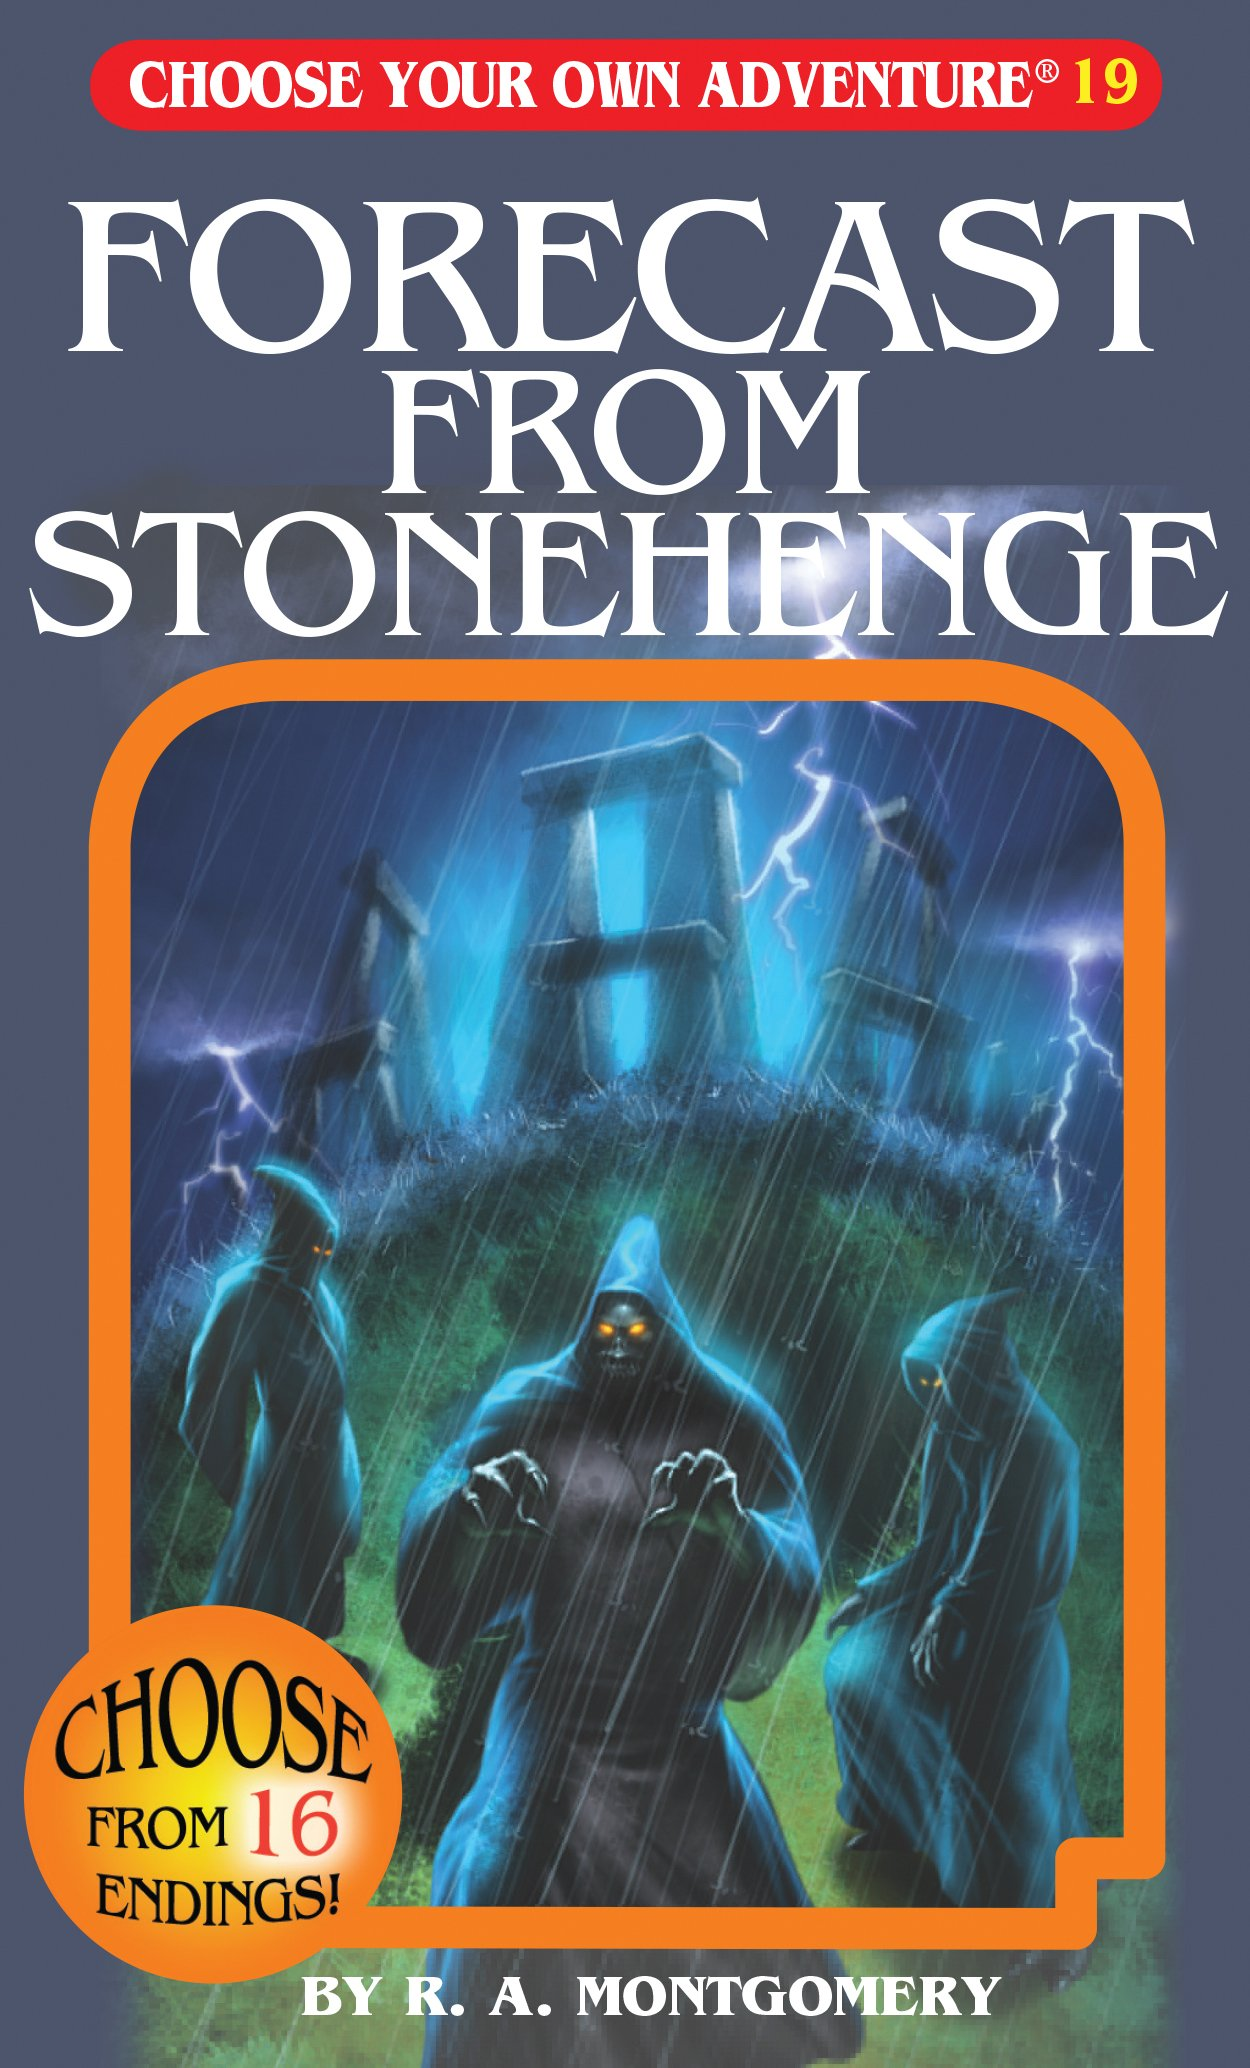 Forecast Stonehenge Choose Your Adventure product image